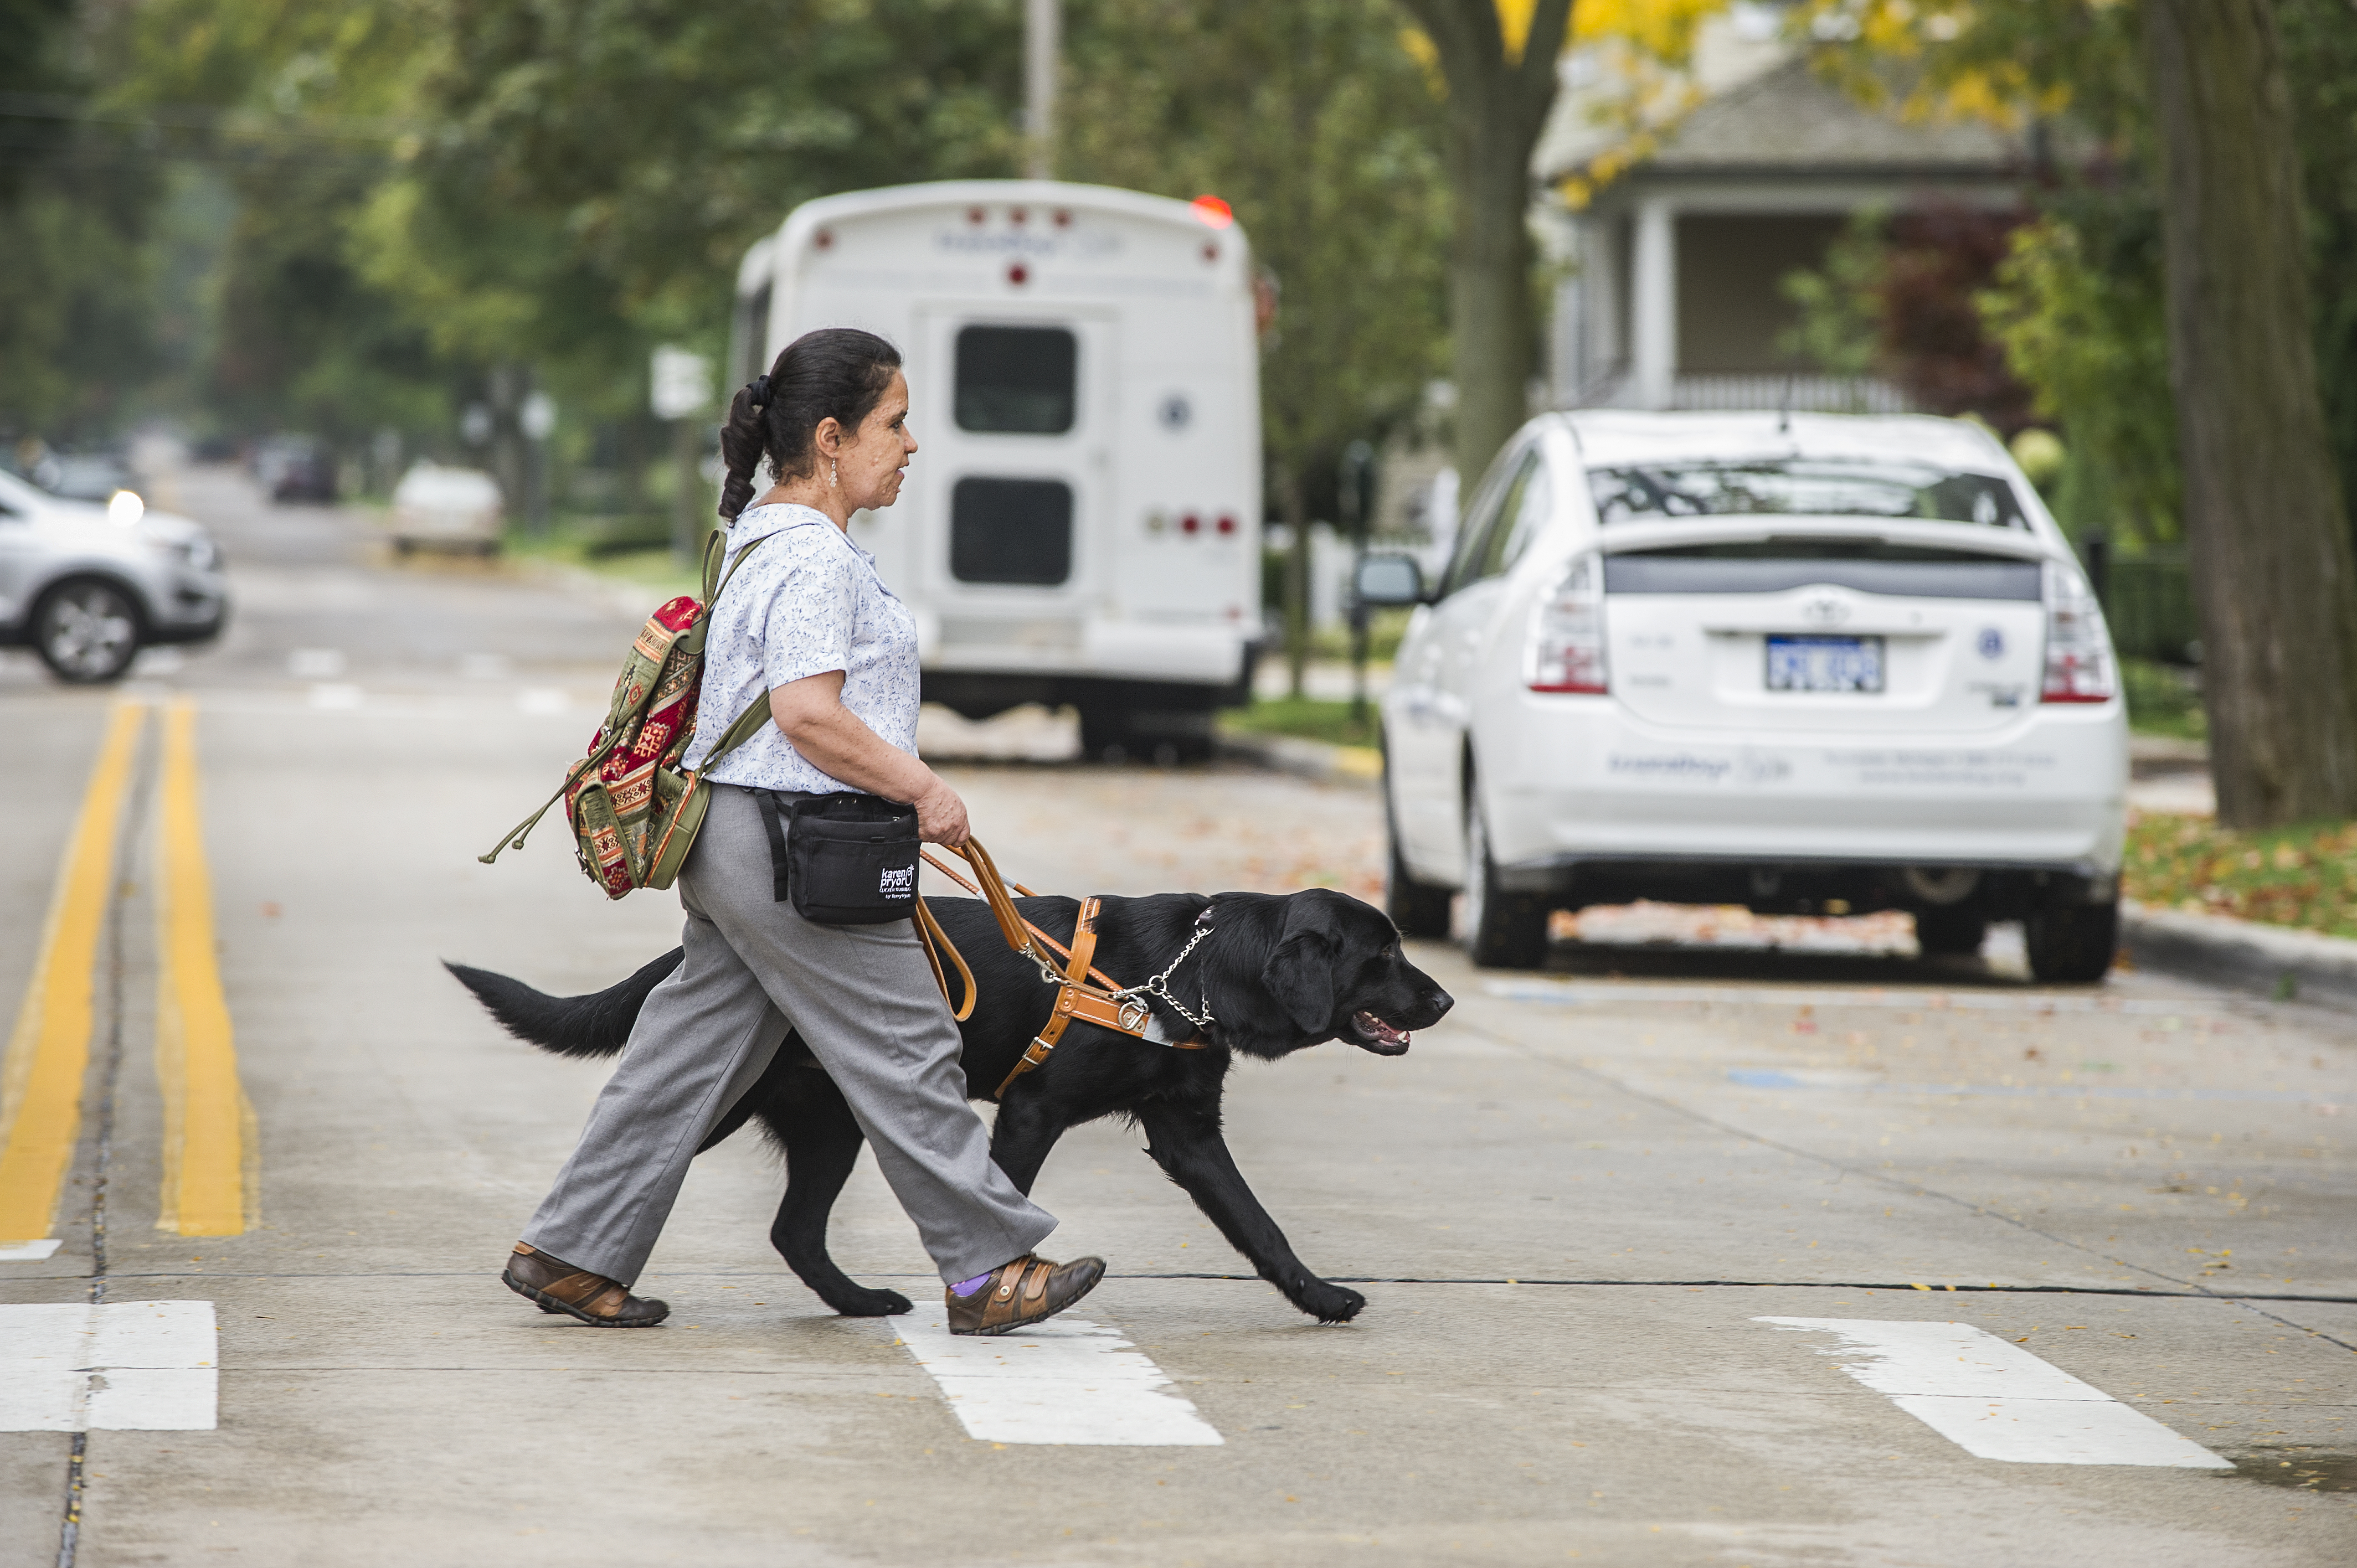 A woman using a black guide dog in harness is crossing the street in a crosswalk.